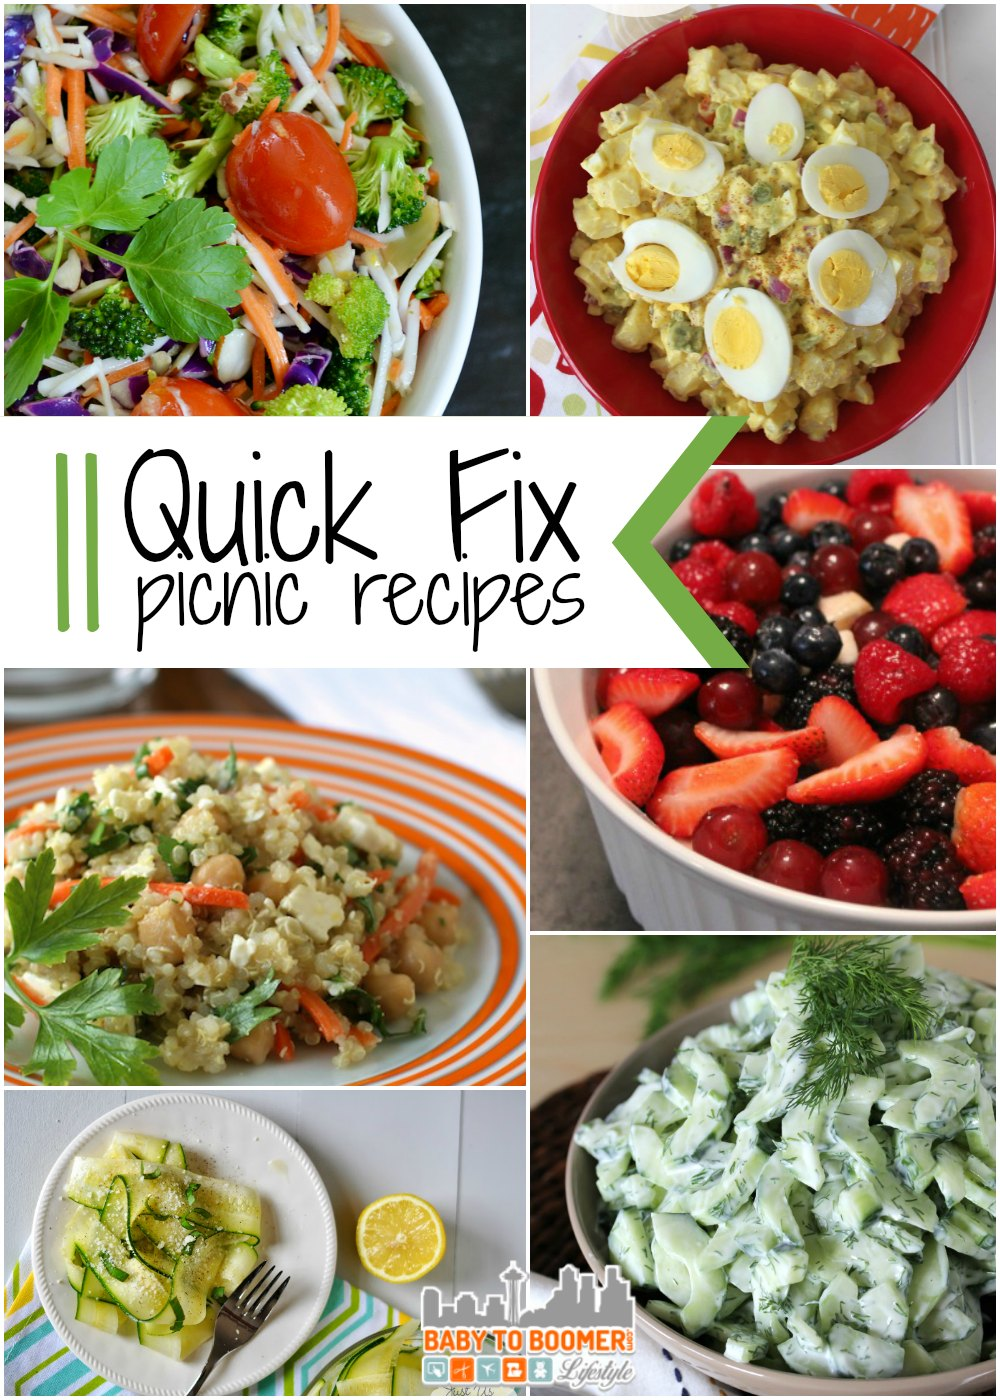 Picnic Recipes: 11 Quick Fix Side Dishes to Make